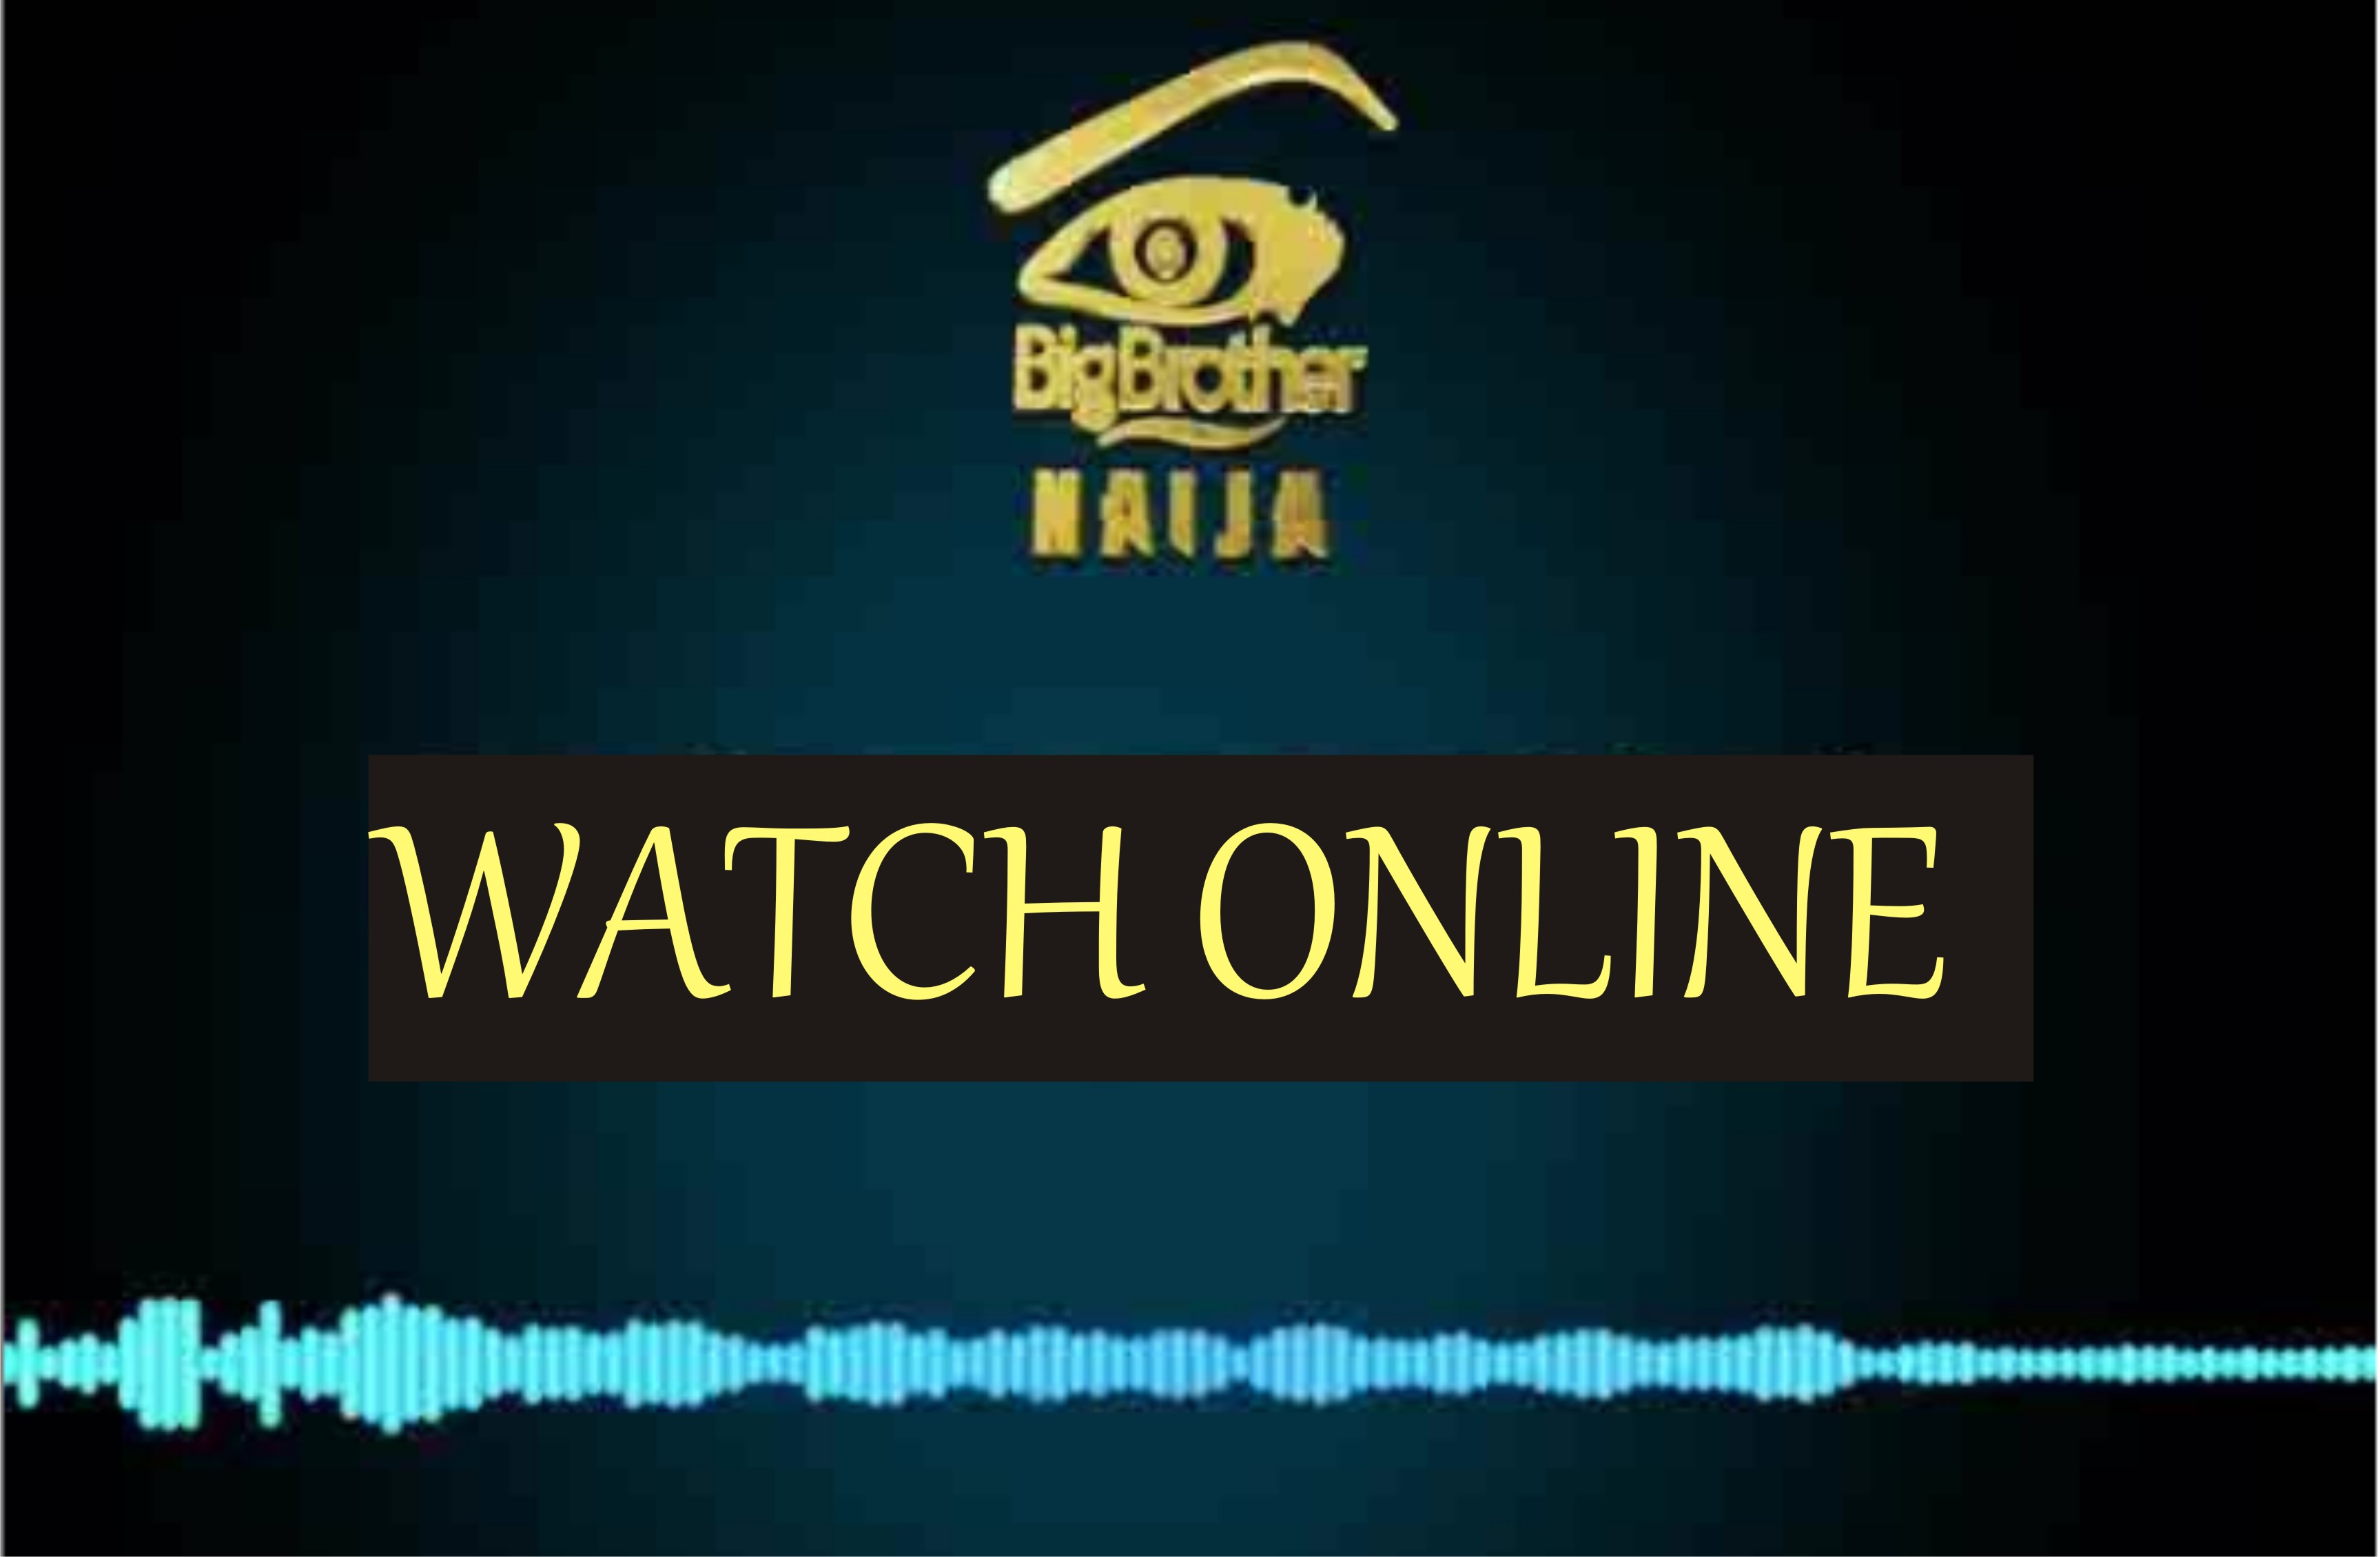 How to Watch Big Brother Naija 2019 Online